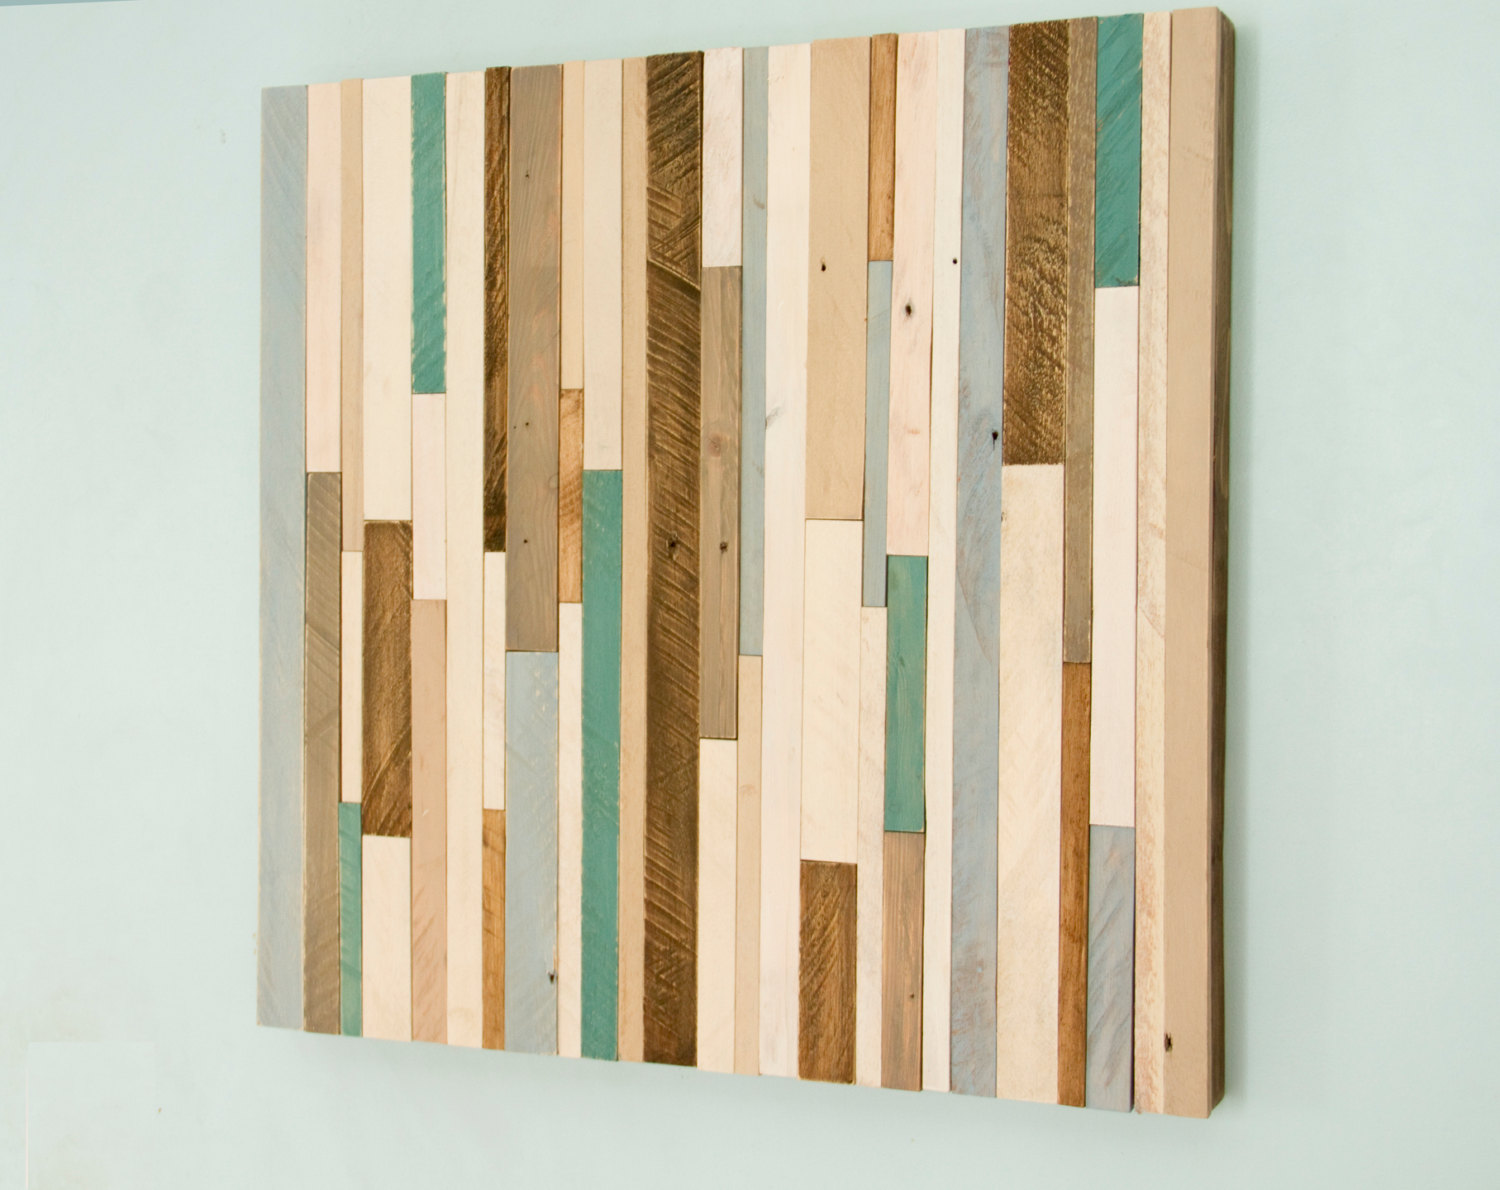 Rustic wood wall art reclaimed wood decor 20 x 20 reclaimed wood wall sculpture art glamour - Wooden wall decoration ...